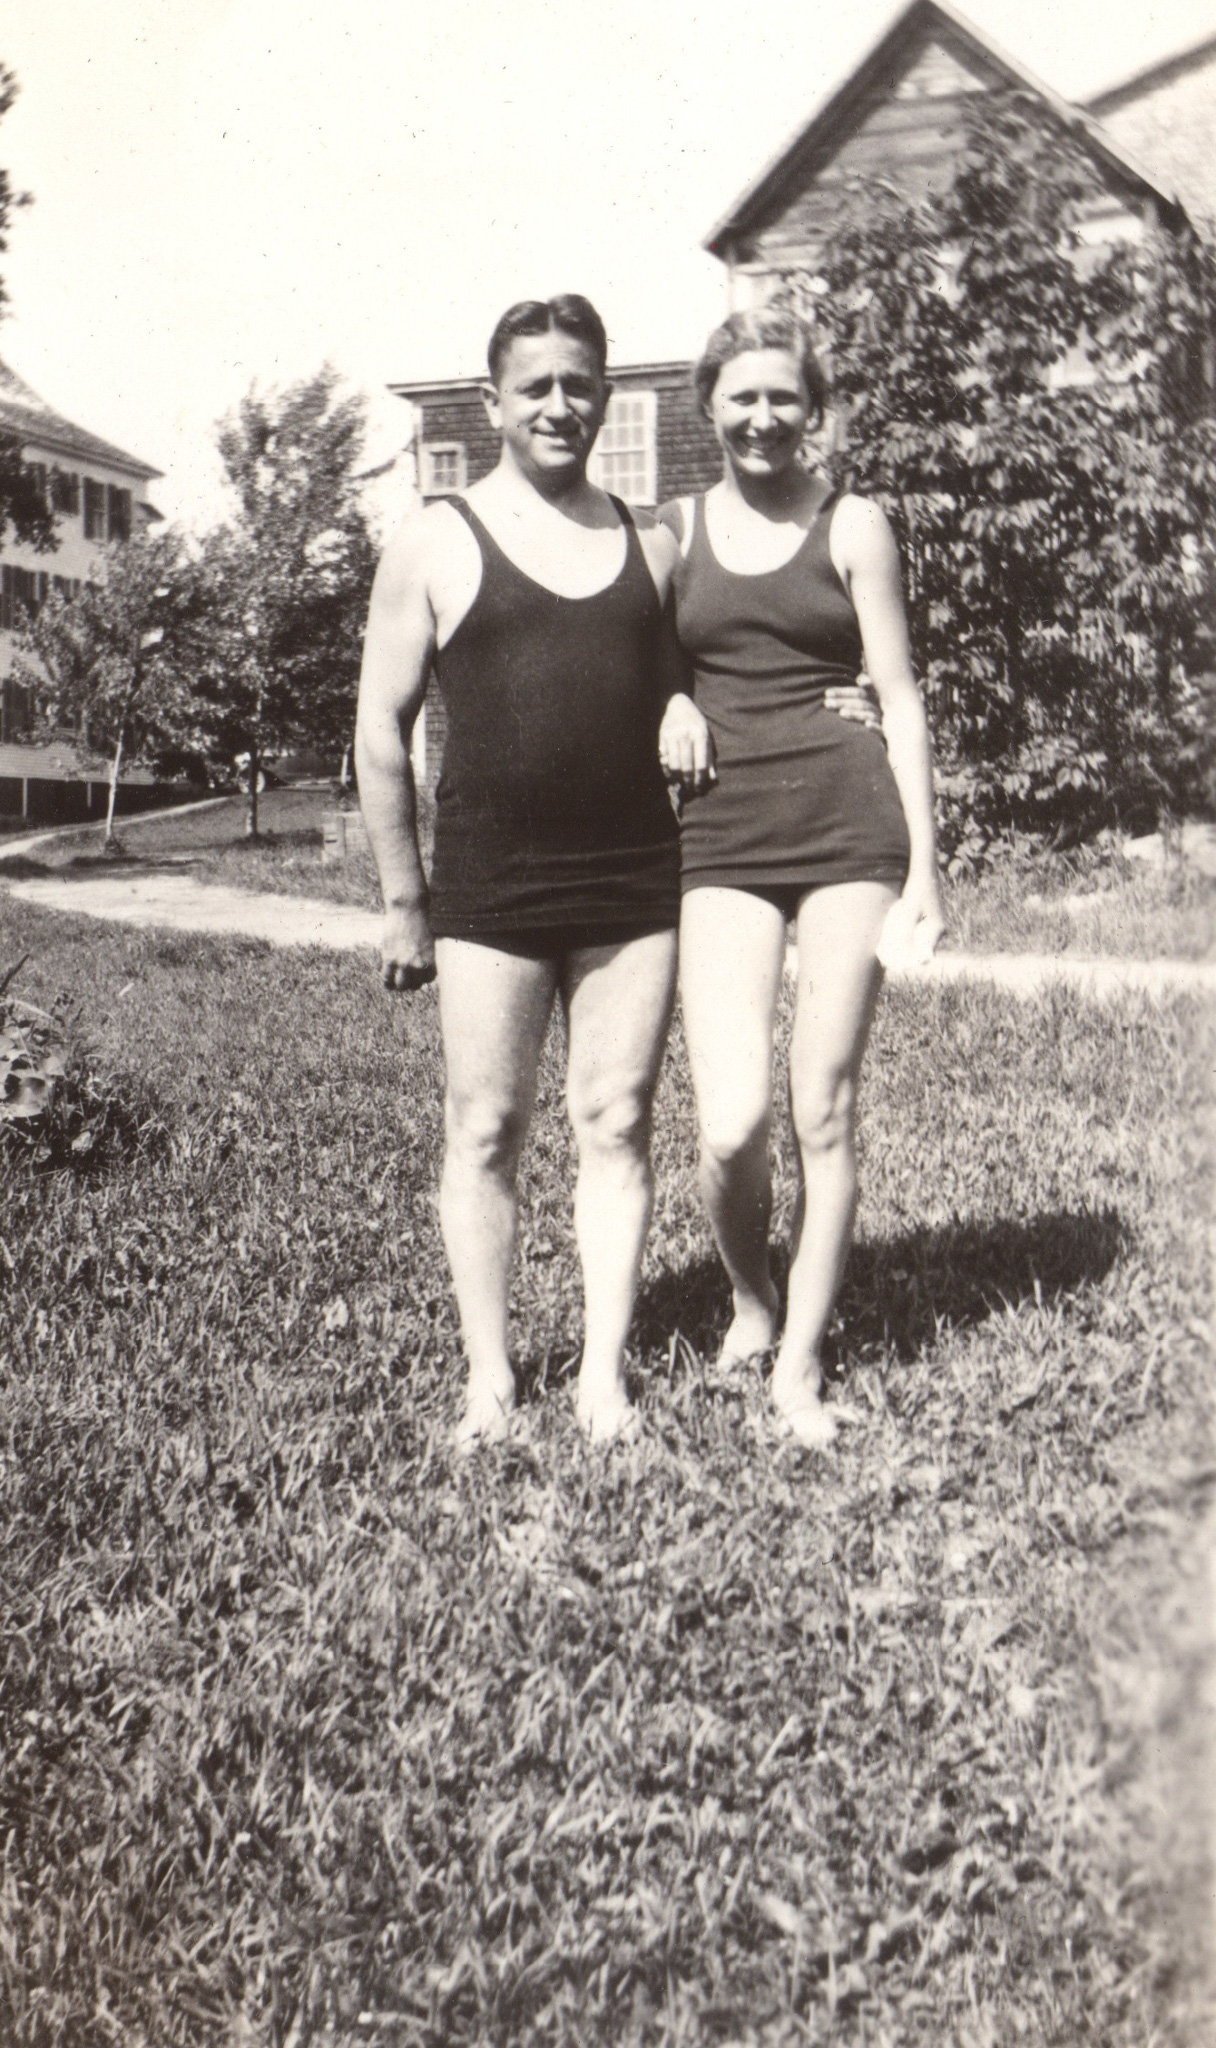 Harry and Mary in swimsuits